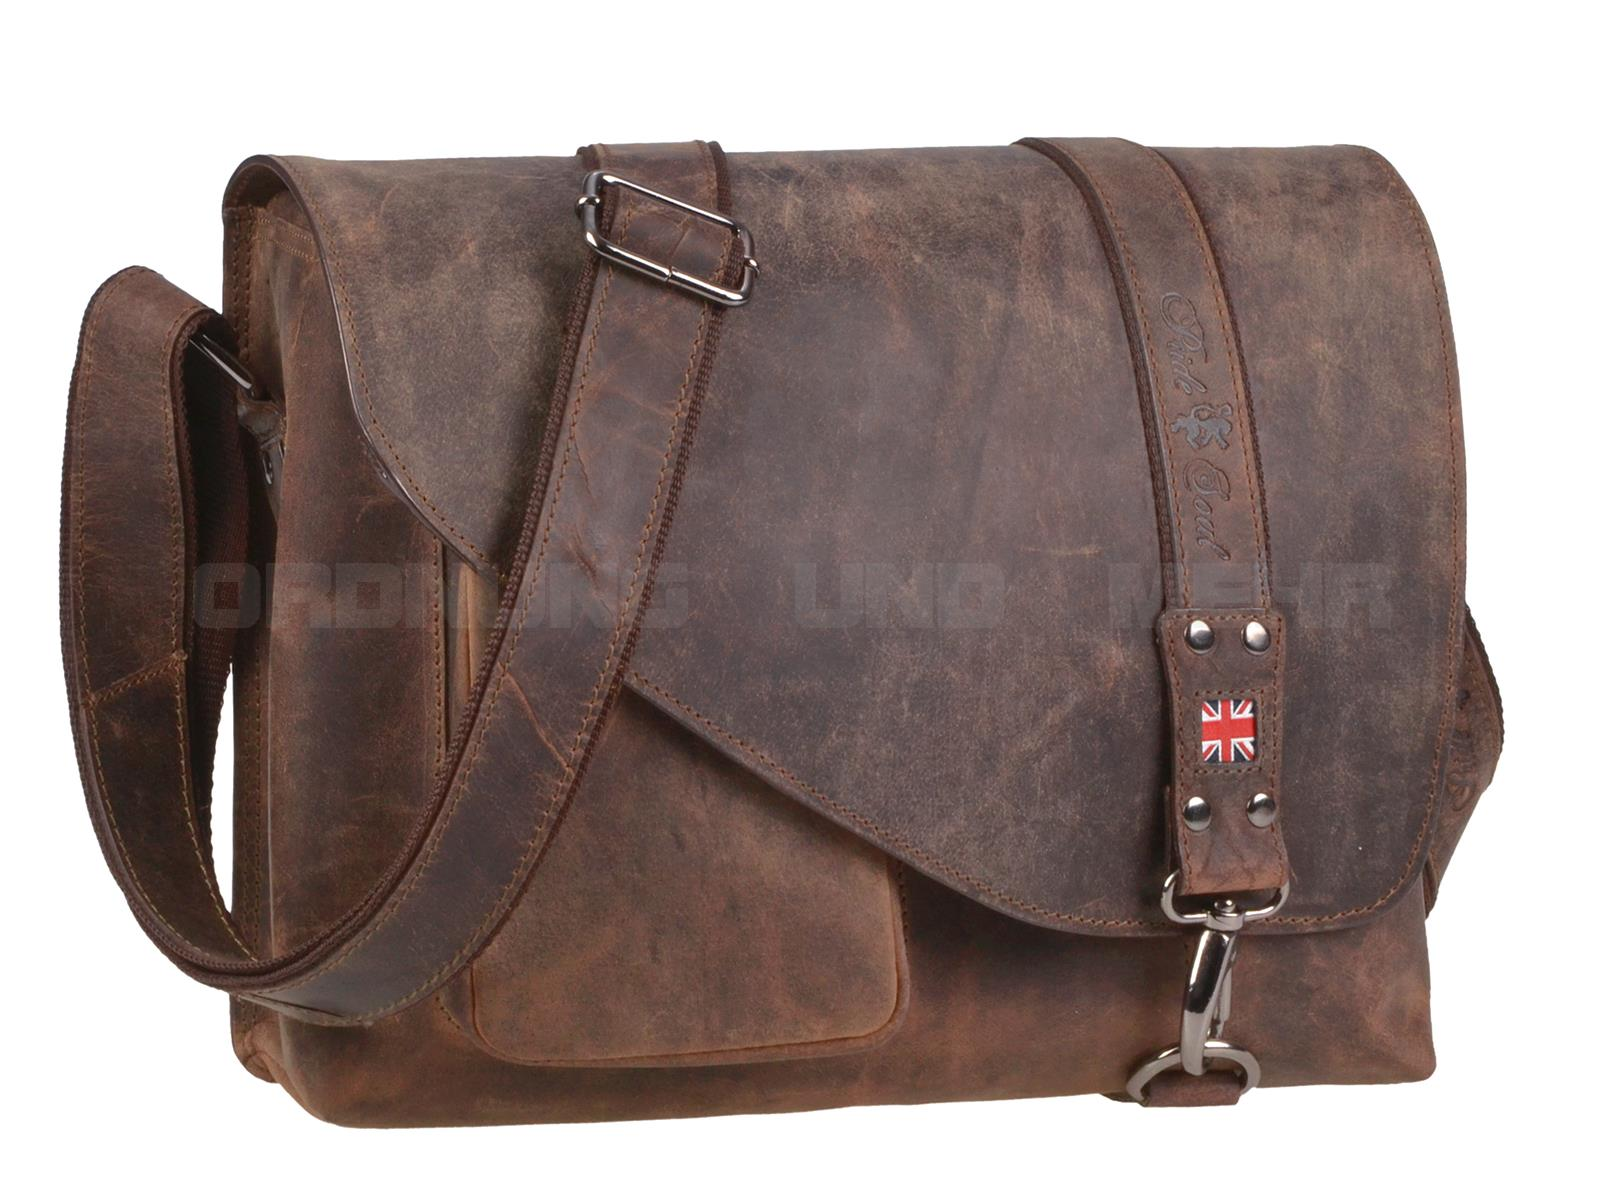 Pride and Soul Leder Umhängetasche in antik braun 47144